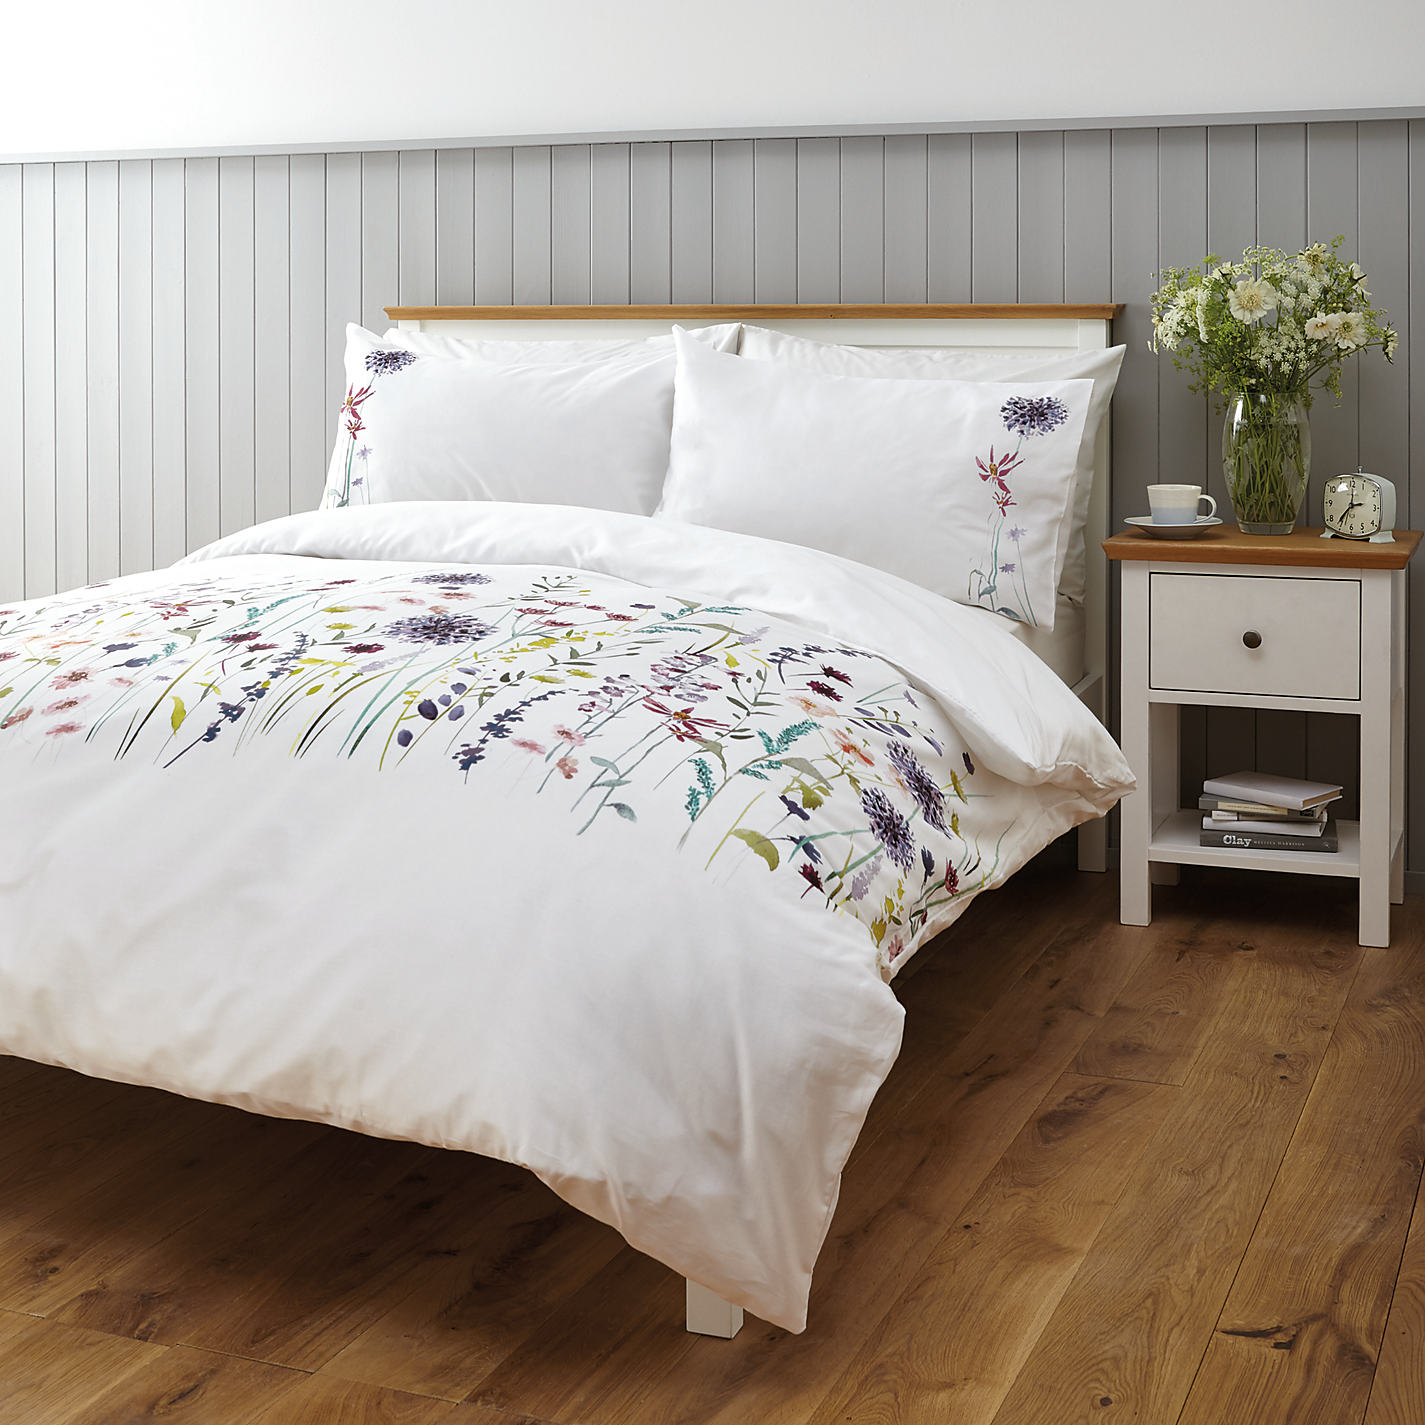 John Lewis Leckford Duvet Cover And Pillowcase Set Online At Johnlewis